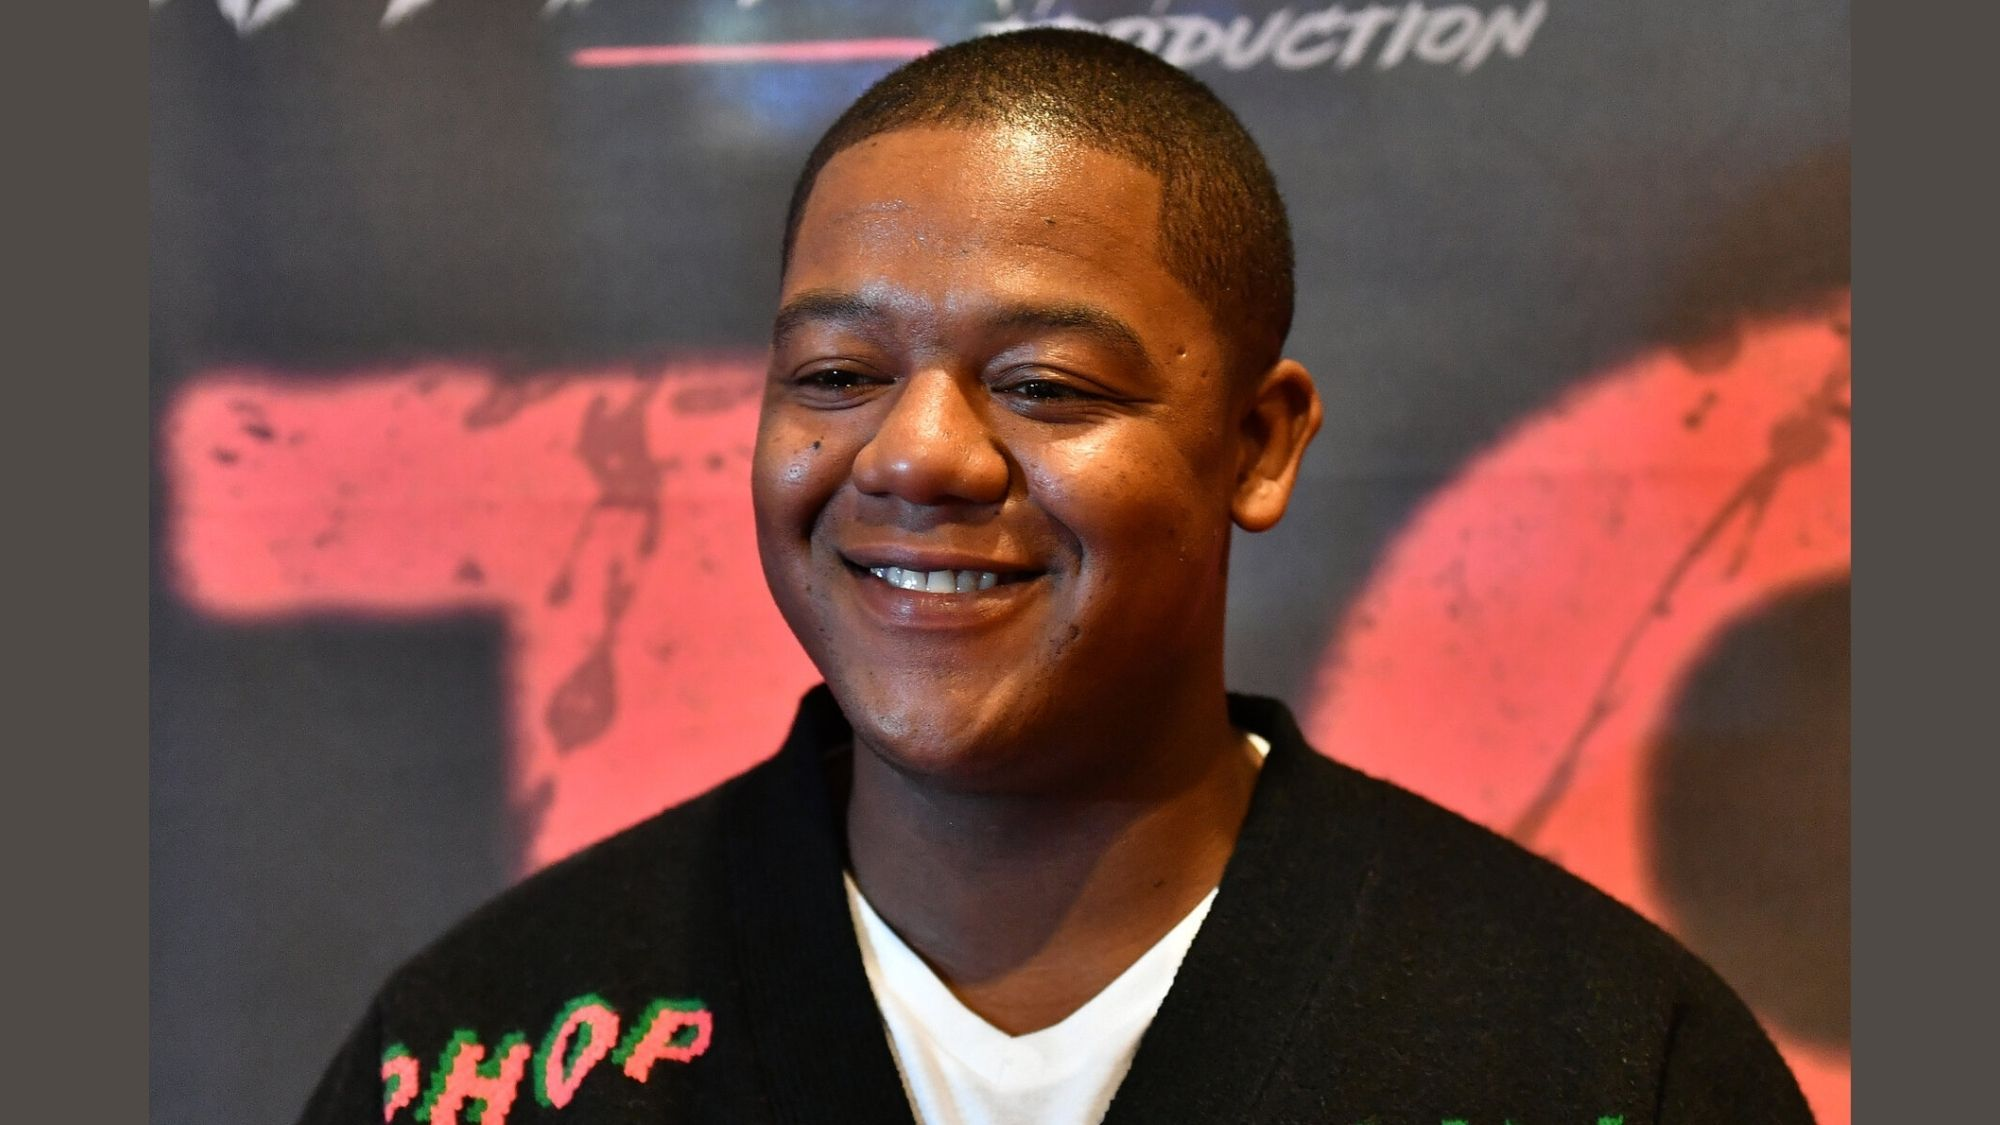 Former Disney star Kyle Massey charged with sending explicit images to minor photo from New York Times